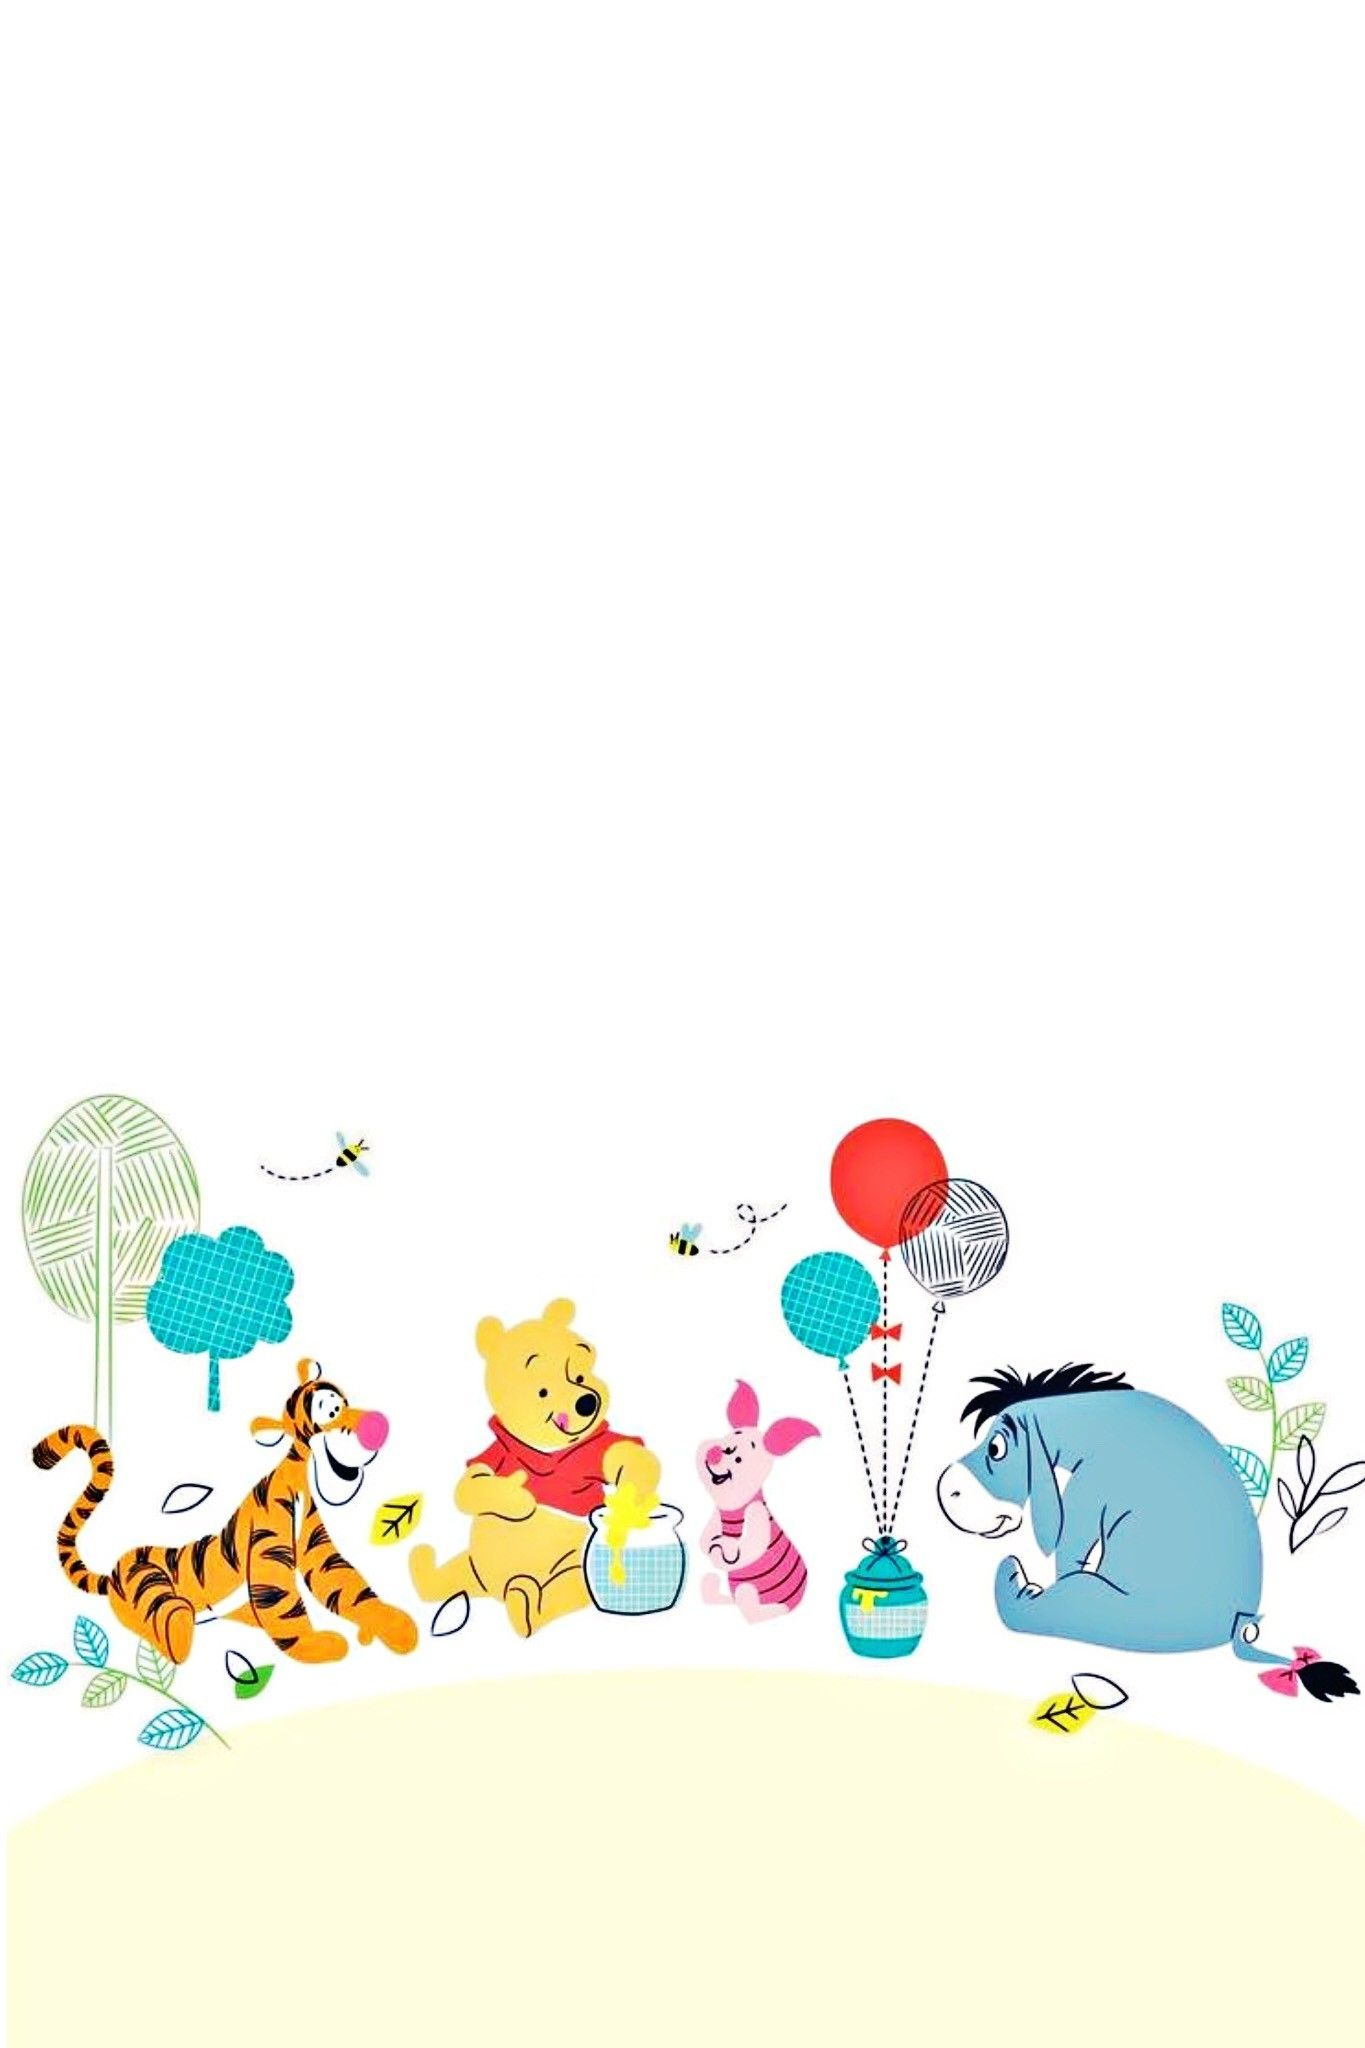 Eeyore Wallpapers 63 Pictures With B And Q Winnie The Pooh Wallpaper Winnie The Pooh Background Cute Disney Wallpaper Pooh